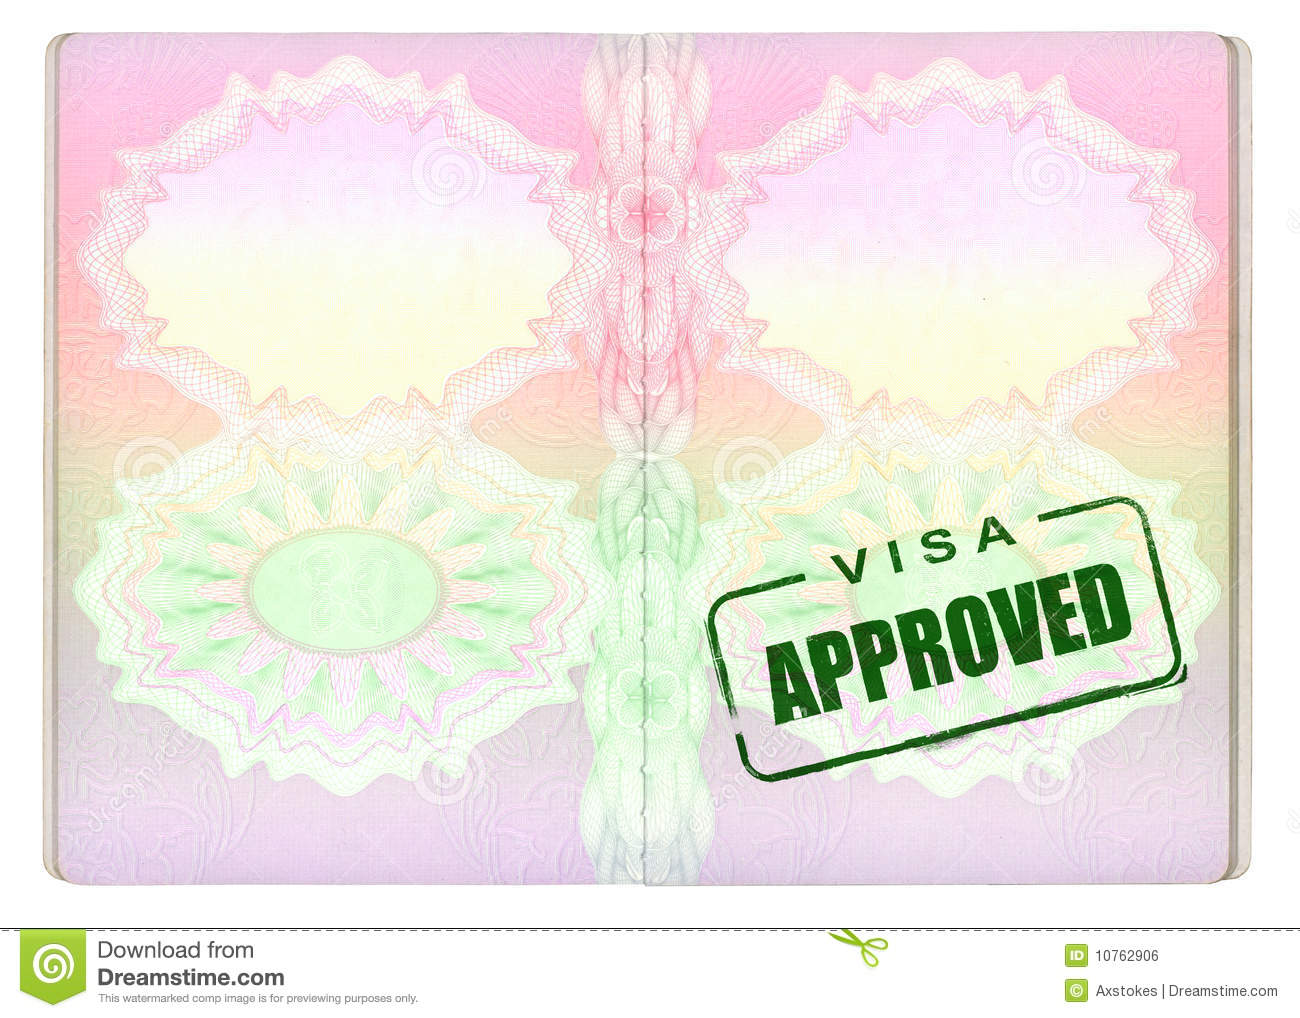 On panda free images. Passport clipart approved visa